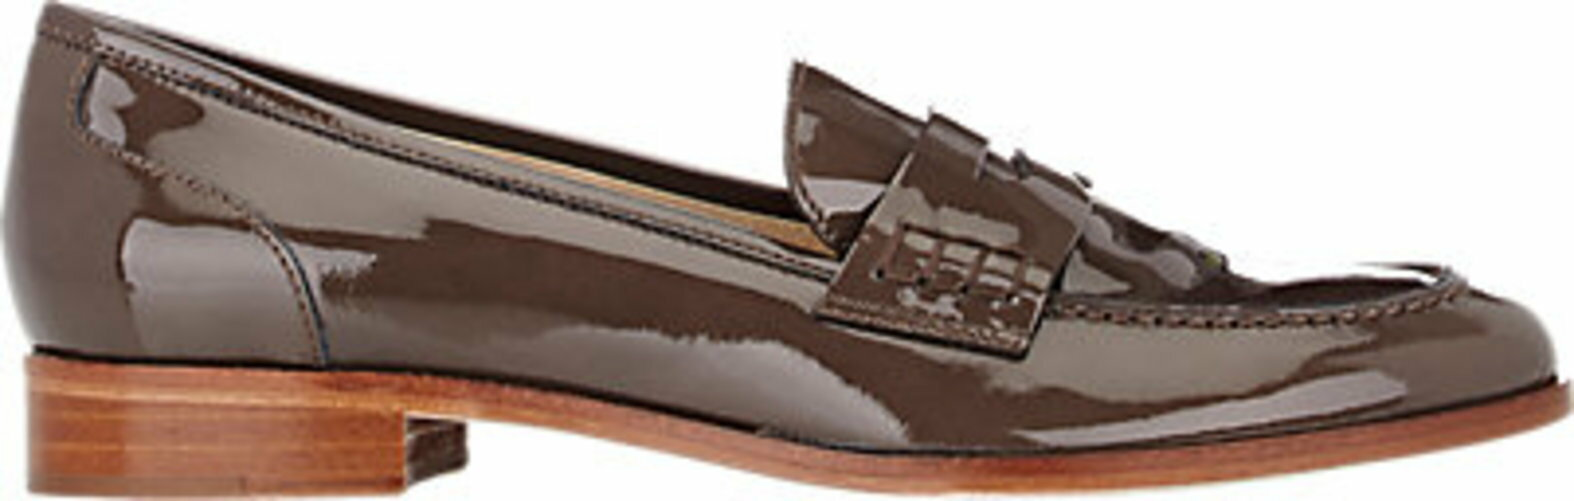 Barneys New York Apron-Toe Penny Loafers